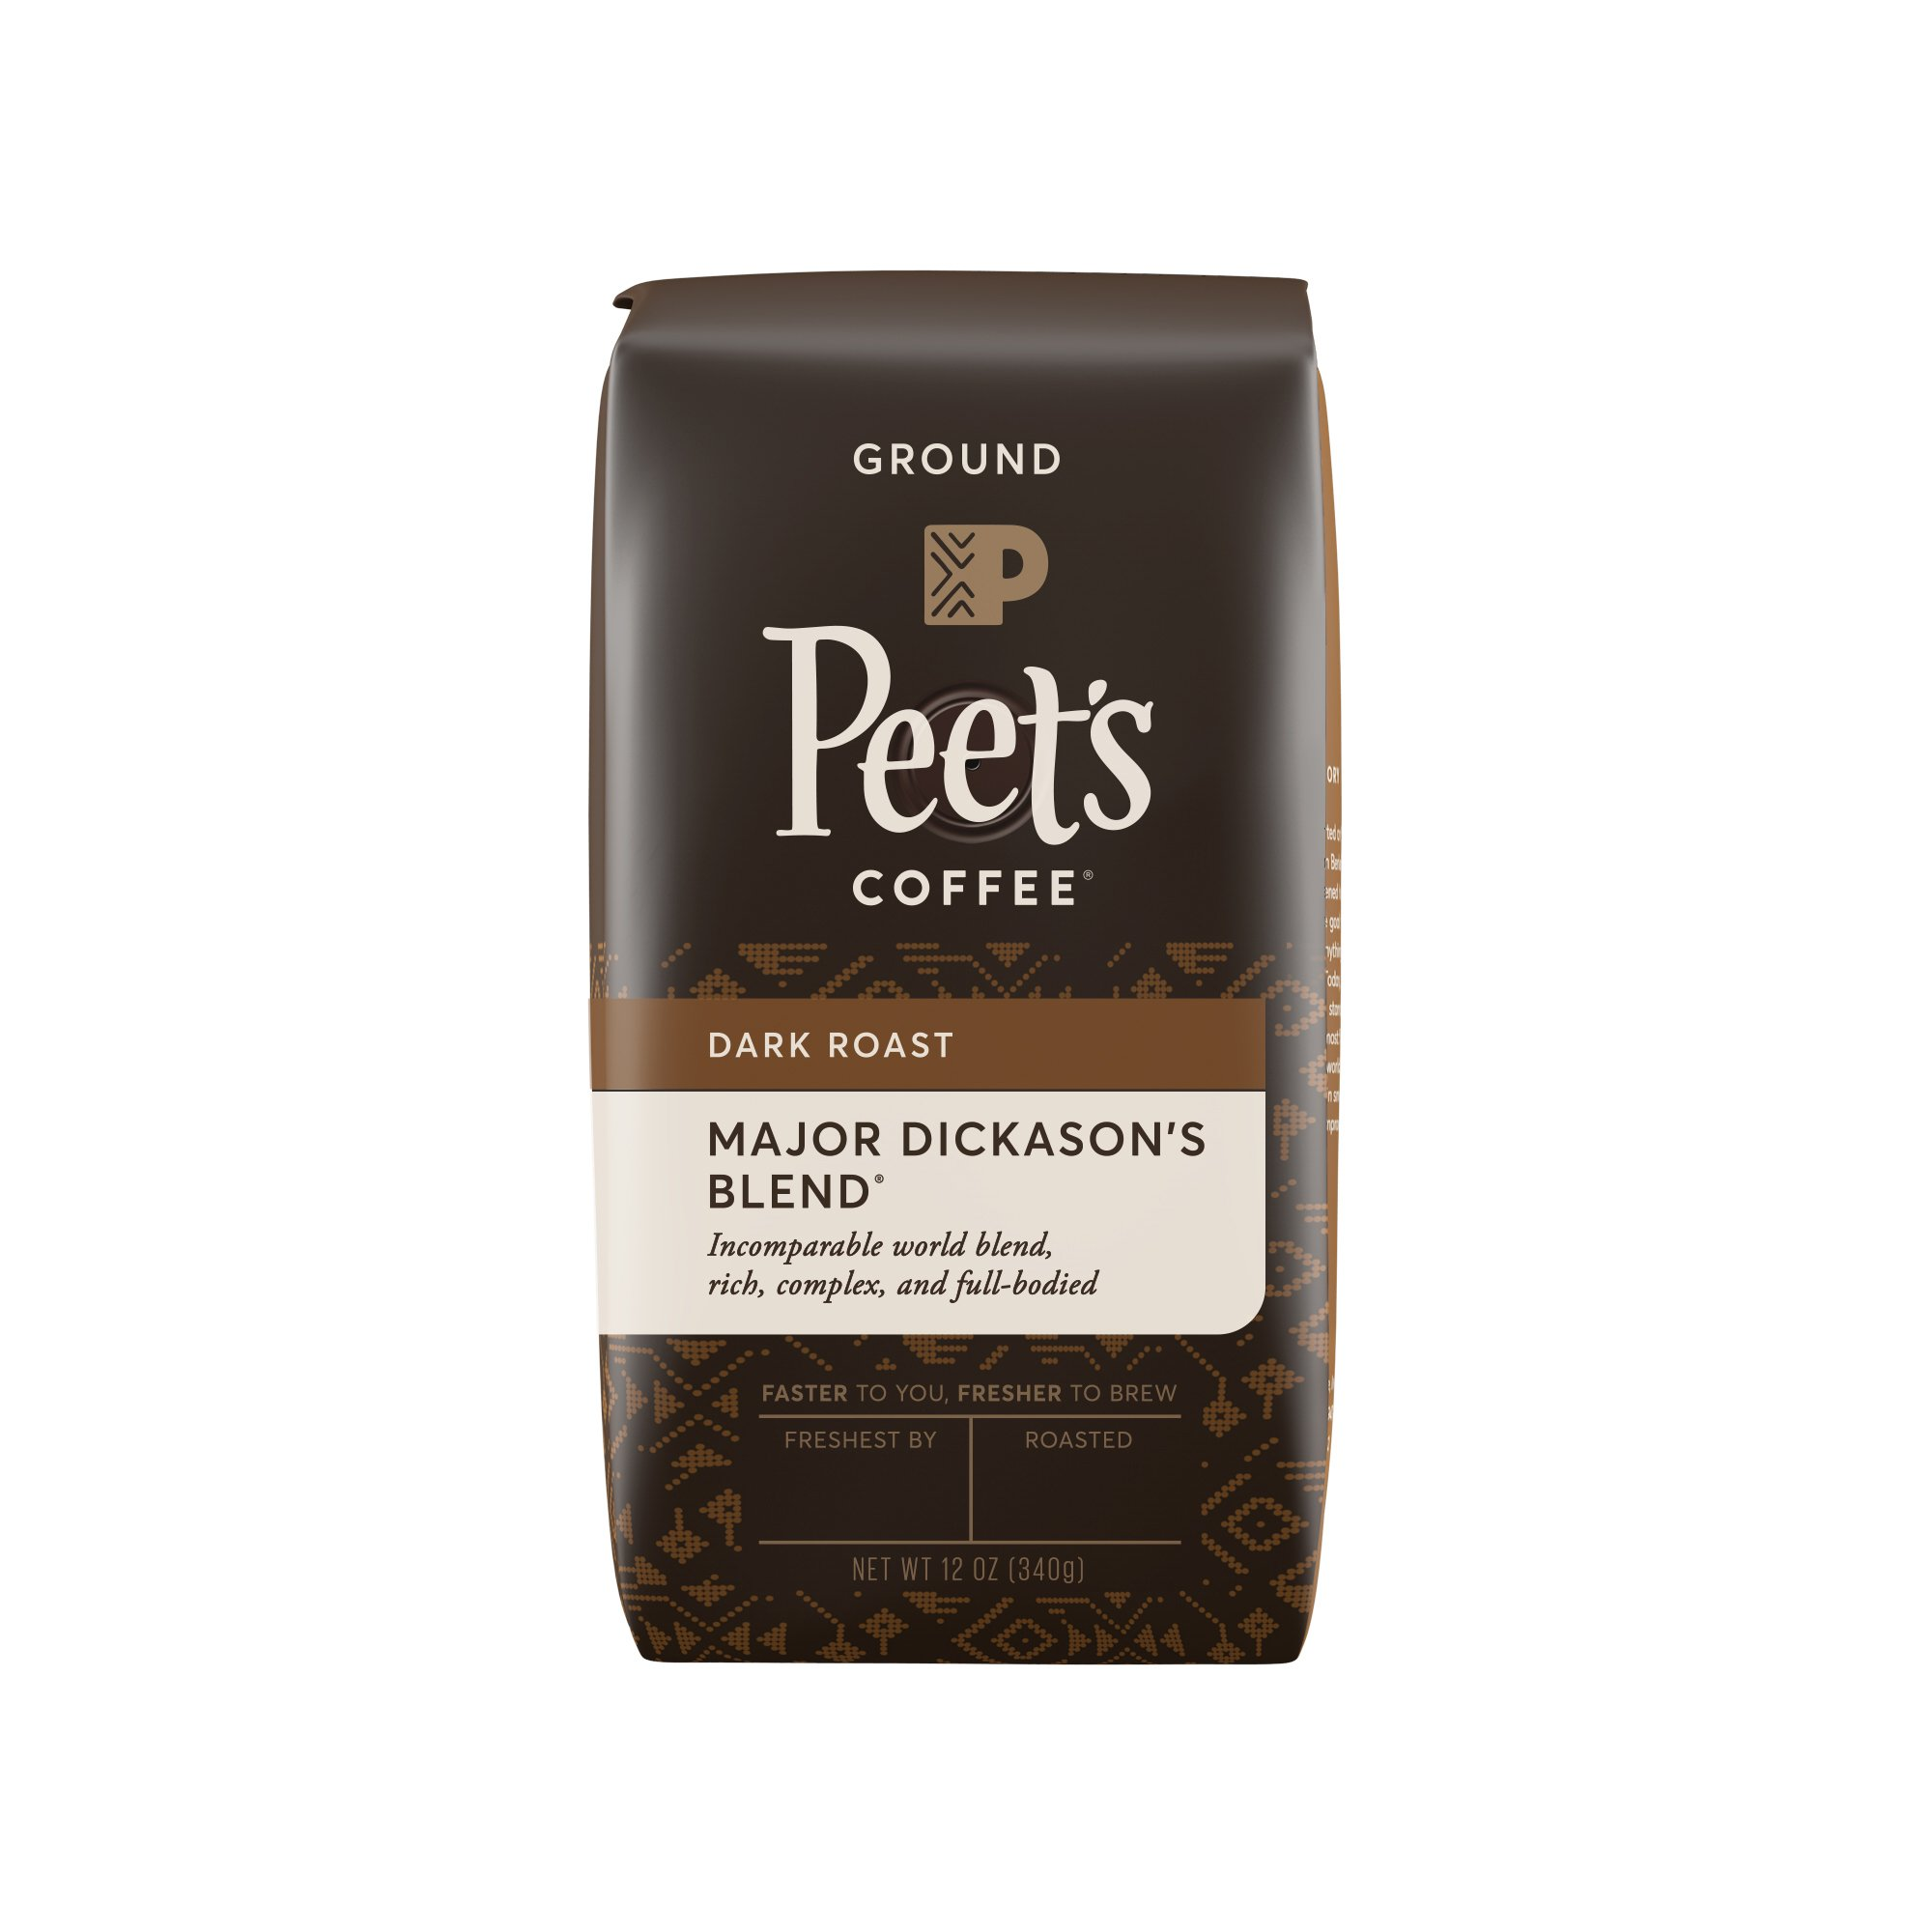 Peet's Coffee, Major Dickason's Blend, Dark Roast, Ground Coffee, 12 oz., Rich, Smooth, and Complex Dark Roast Coffee Blend, with A Full Bodied and Layered Flavor